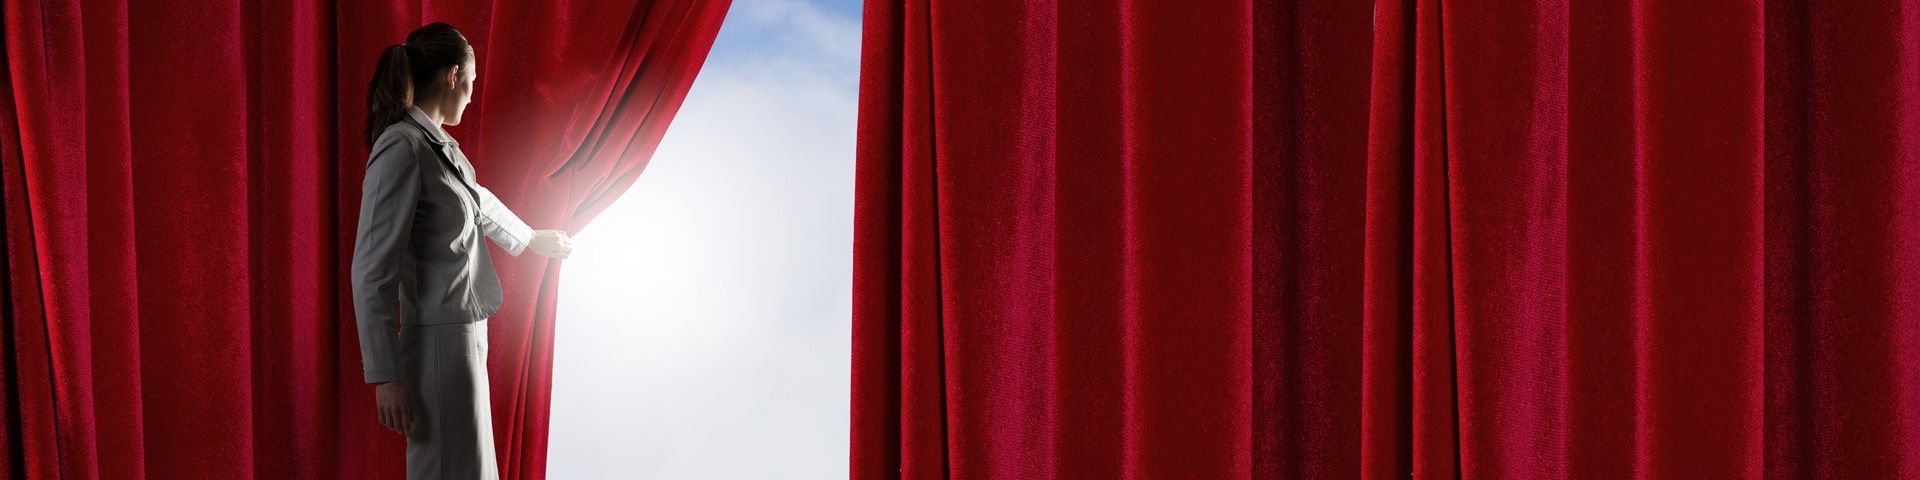 A woman wearing a business suit pulls back a red curtain to reveal a bright blue sky and clouds.